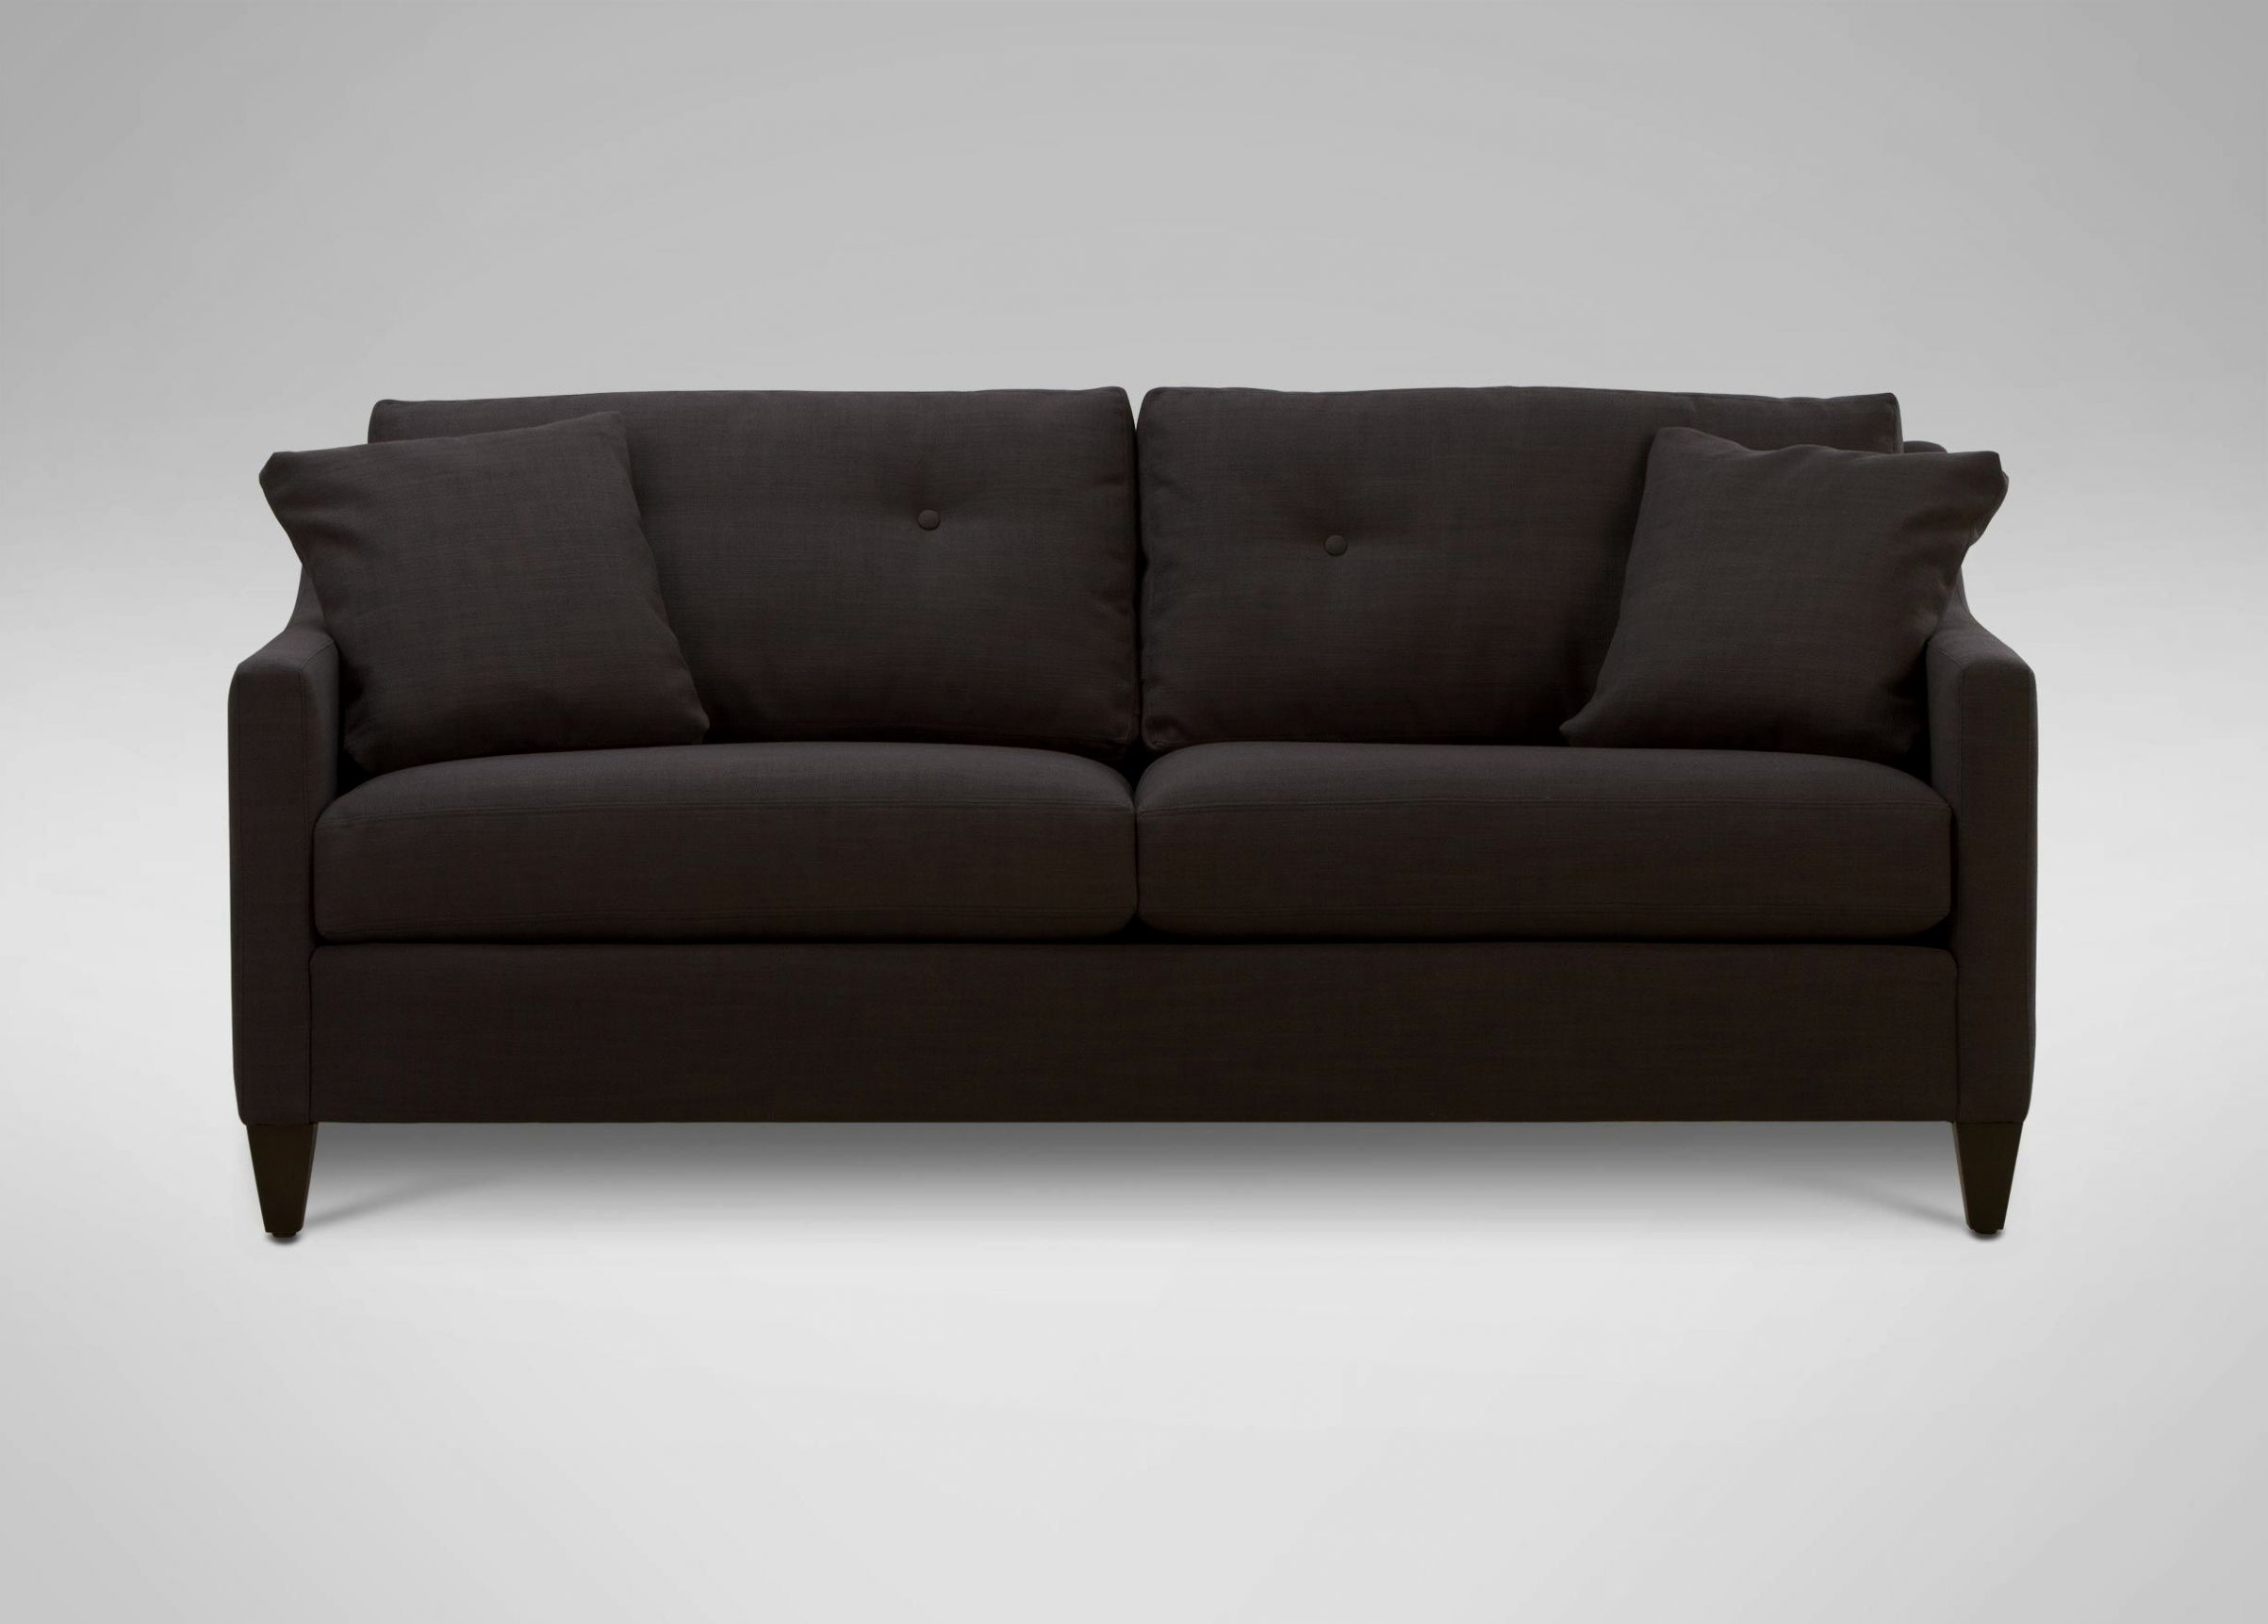 Lovely 200 Sofas Idea #4 Cheap Sectional Sofas Under 200 15 With Inside Sectional Sofas Under  (Image 10 of 10)